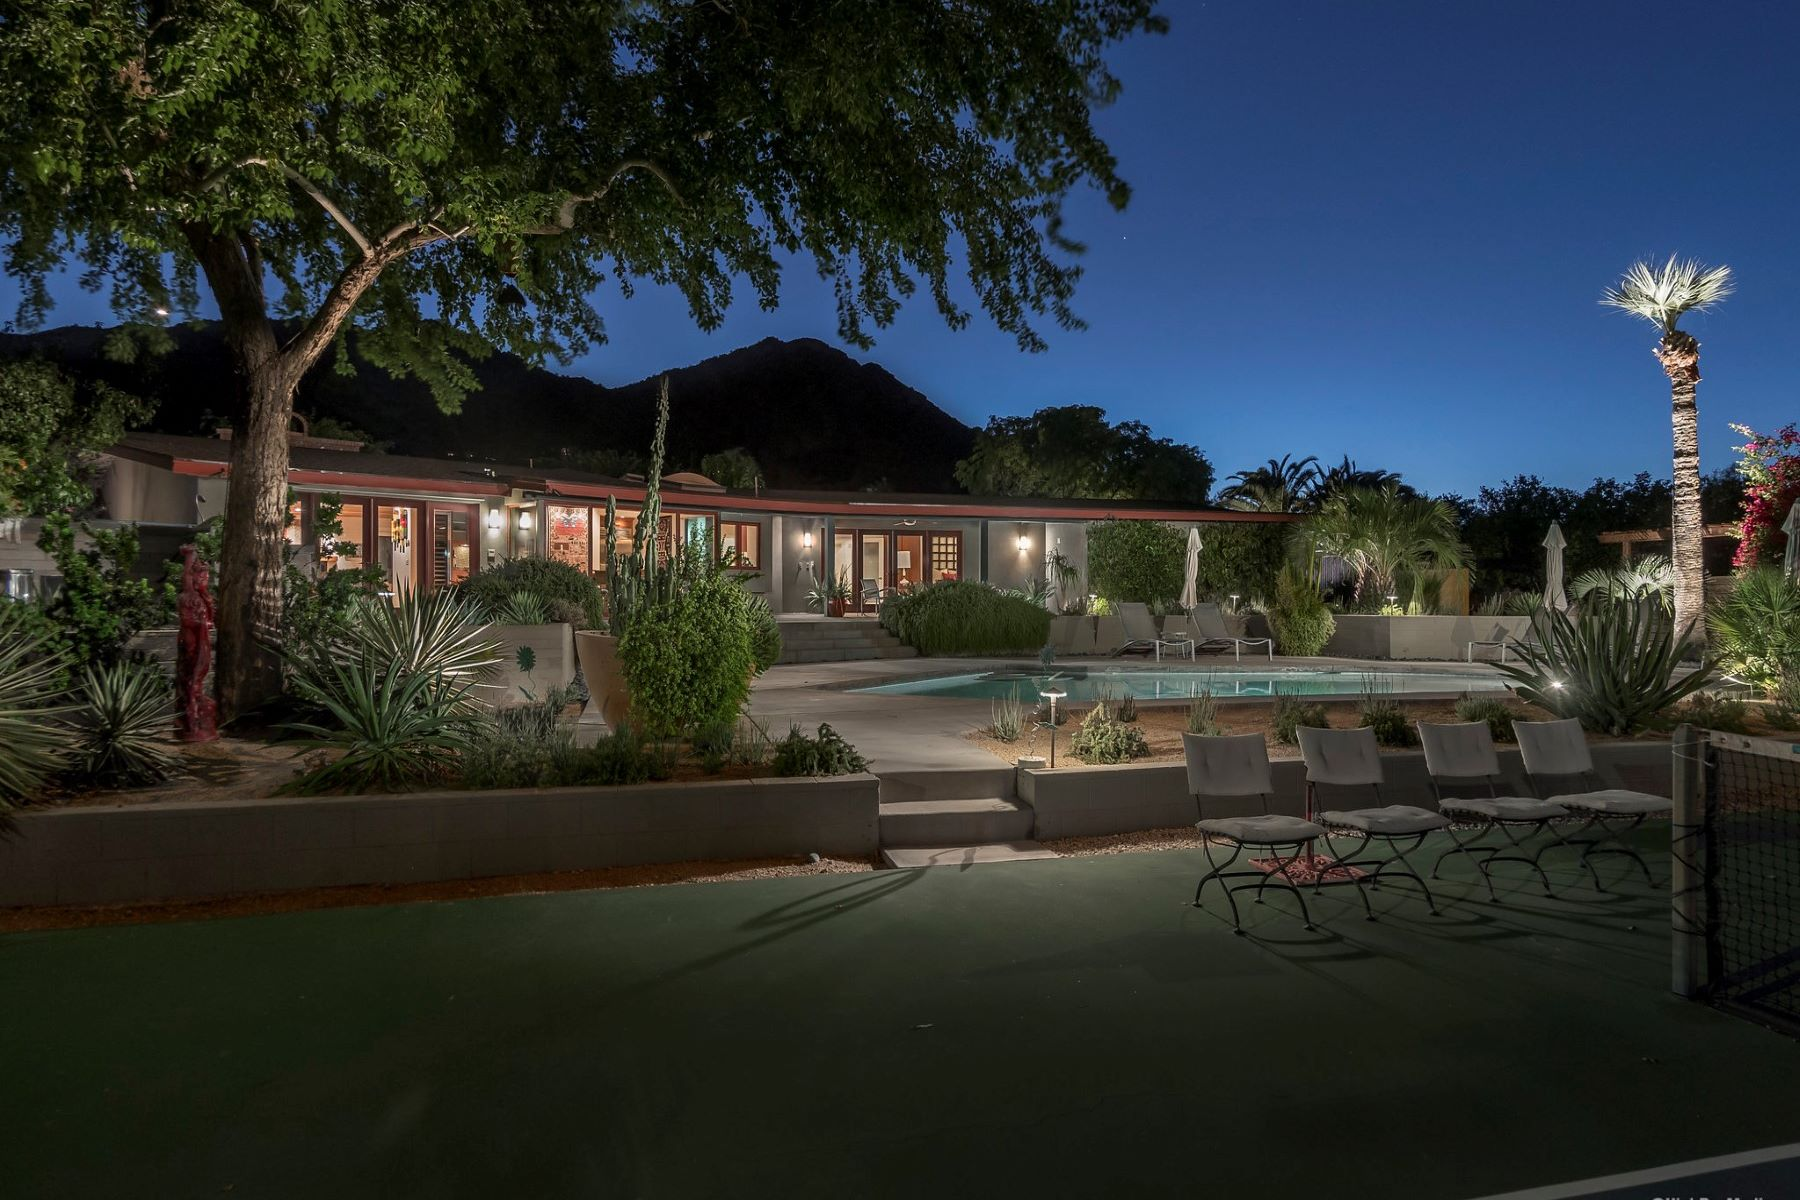 Single Family Home for Sale at A Mid Century Treasure 6330 E SAGE DR, Paradise Valley, Arizona, 85253 United States